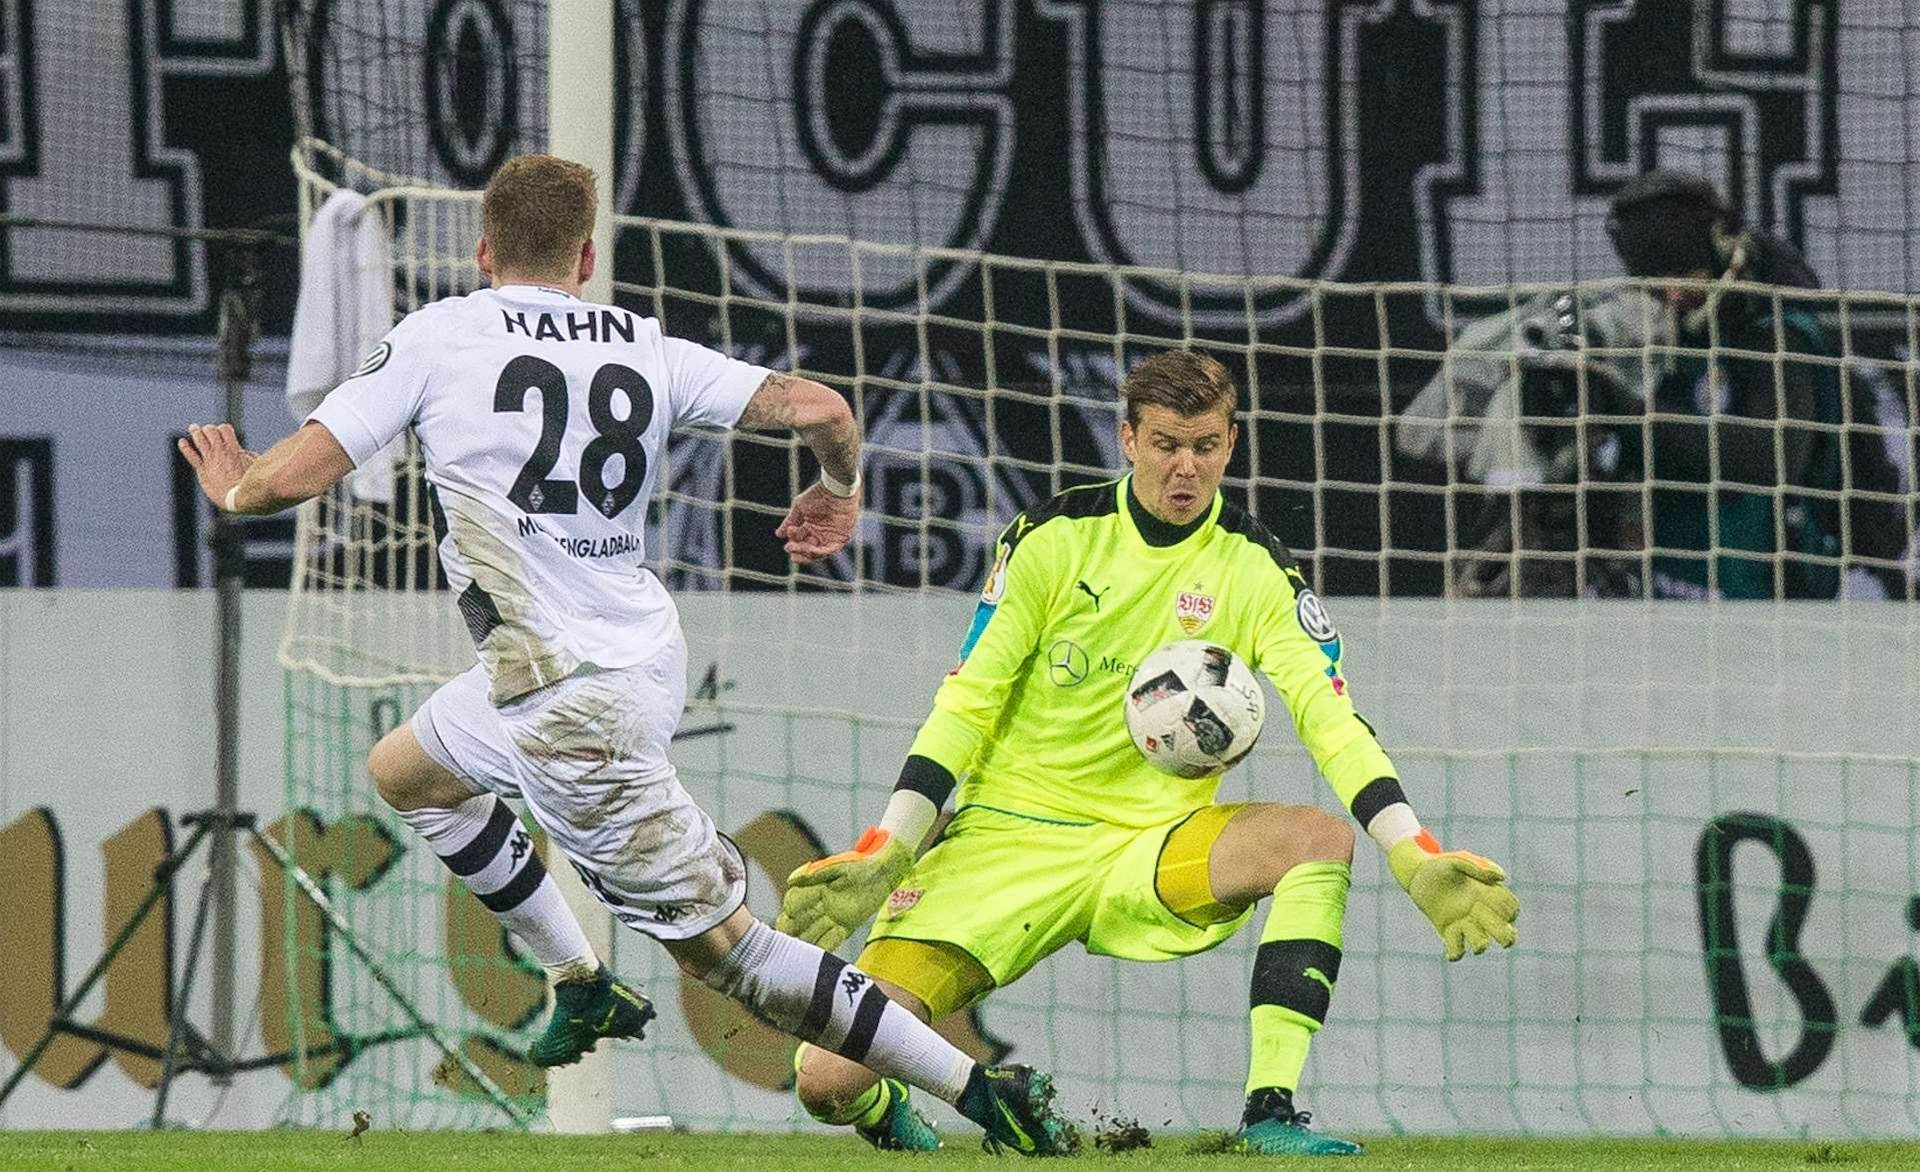 Langerak stars in cup loss